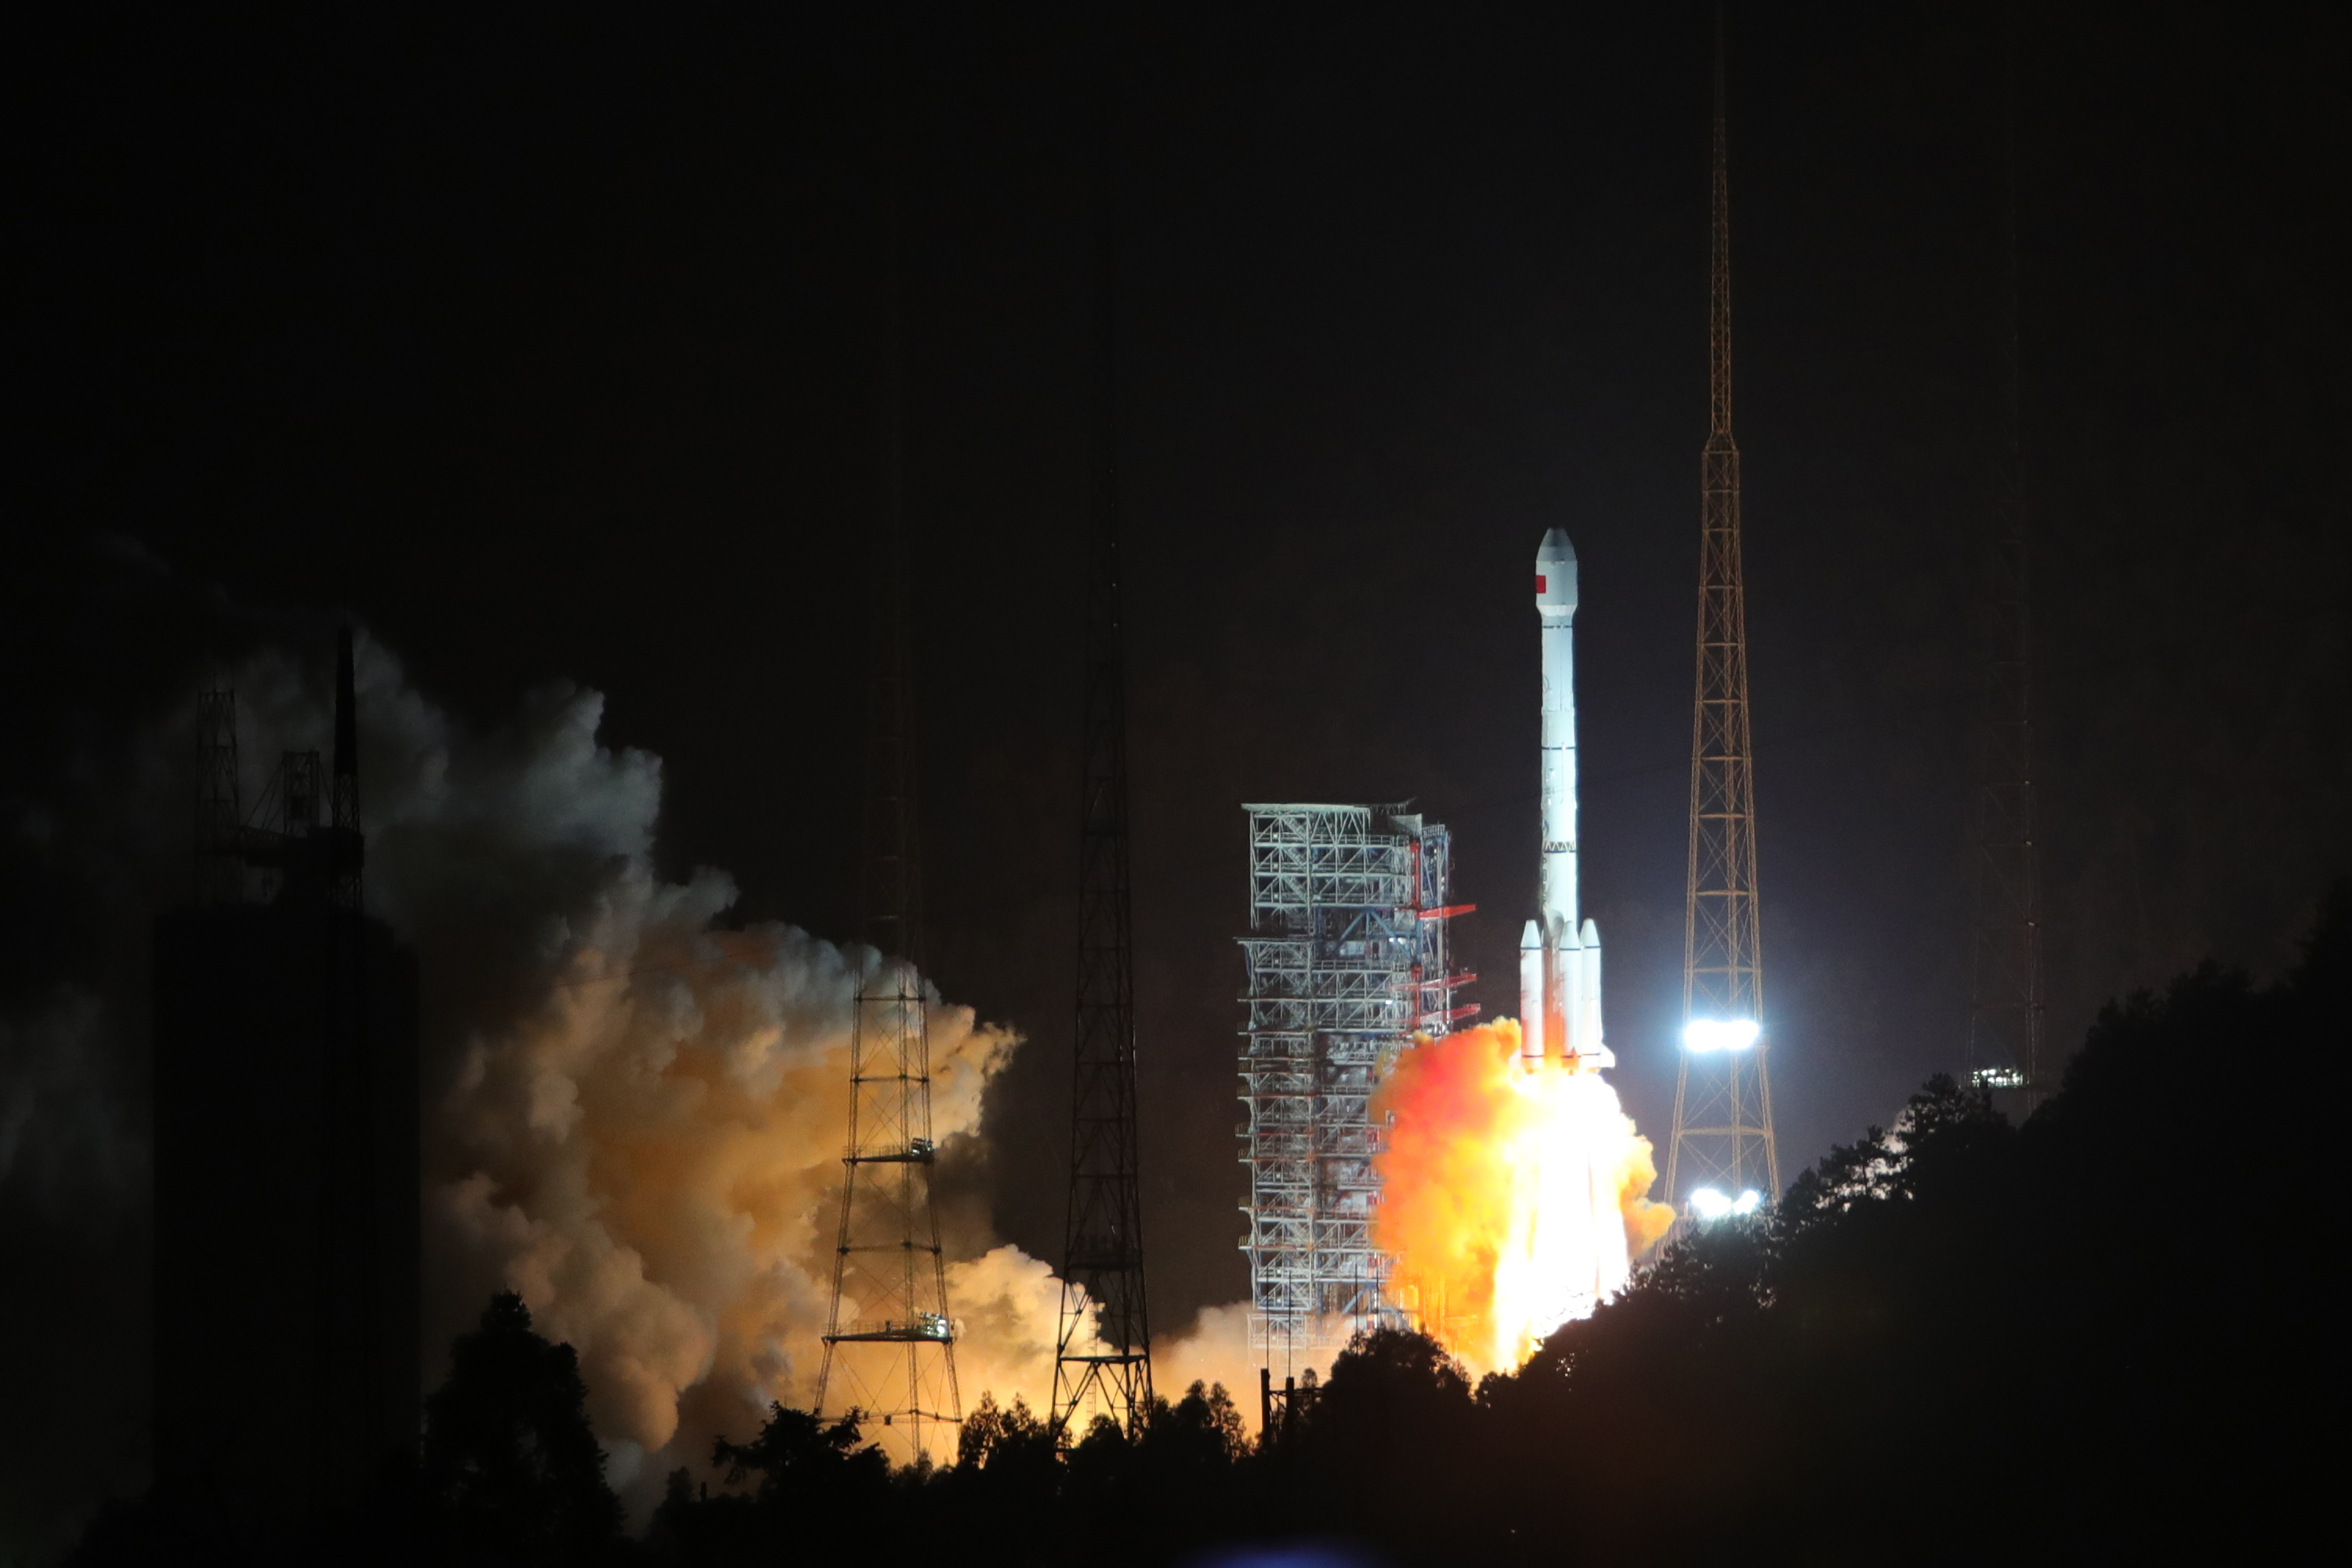 China will complete Beidou rival Global Positioning System with new launches